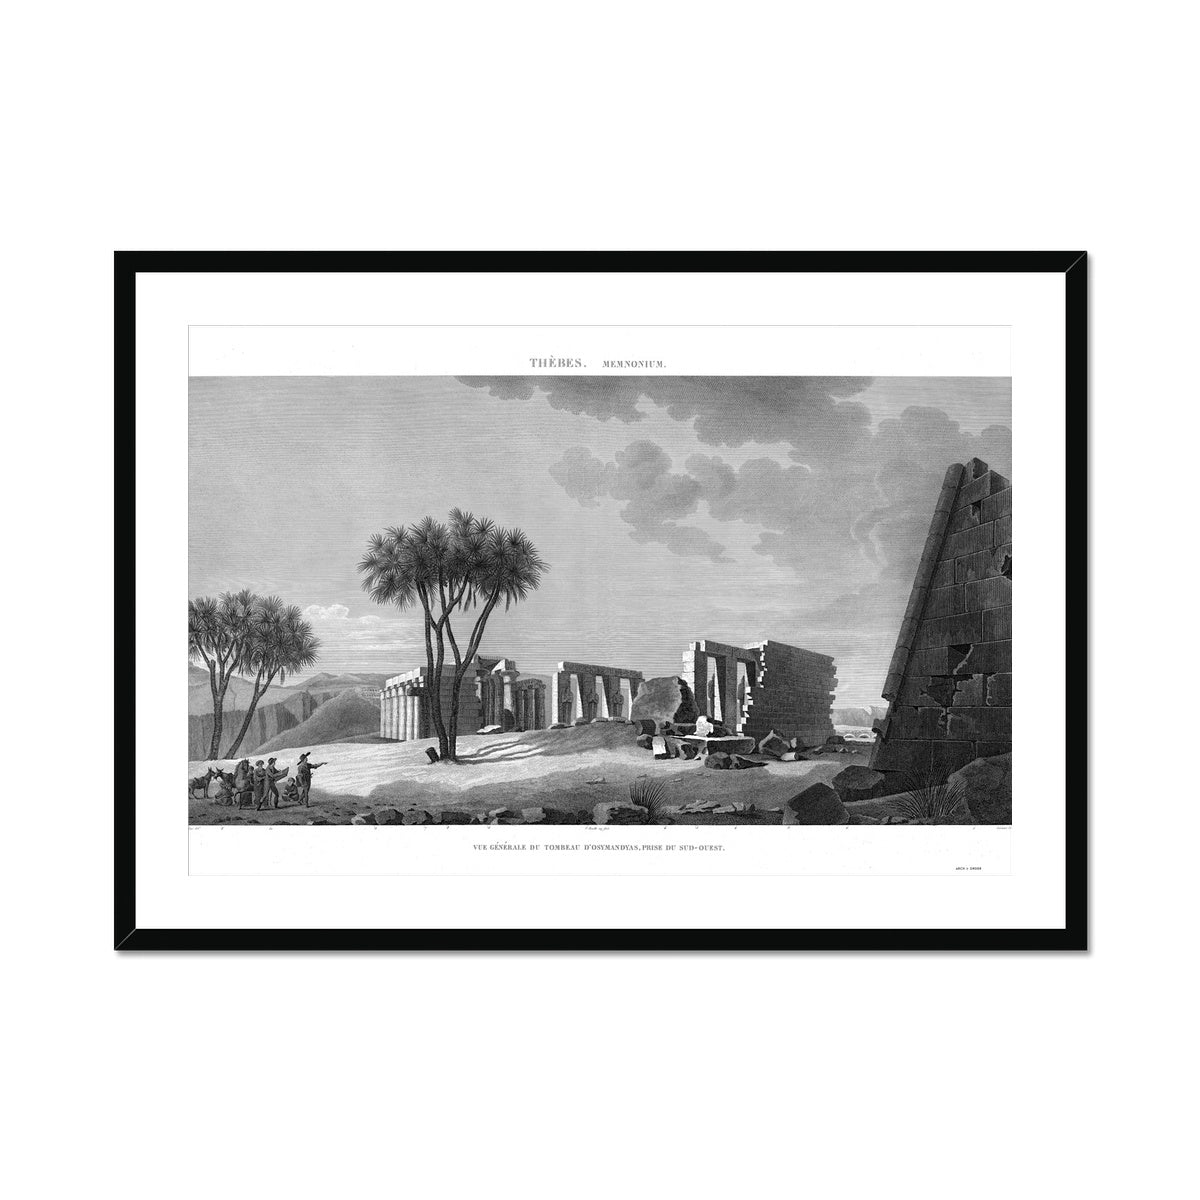 The Tomb of Osymandyas View 3 - Memnonium - Thebes Egypt -  Framed & Mounted Print